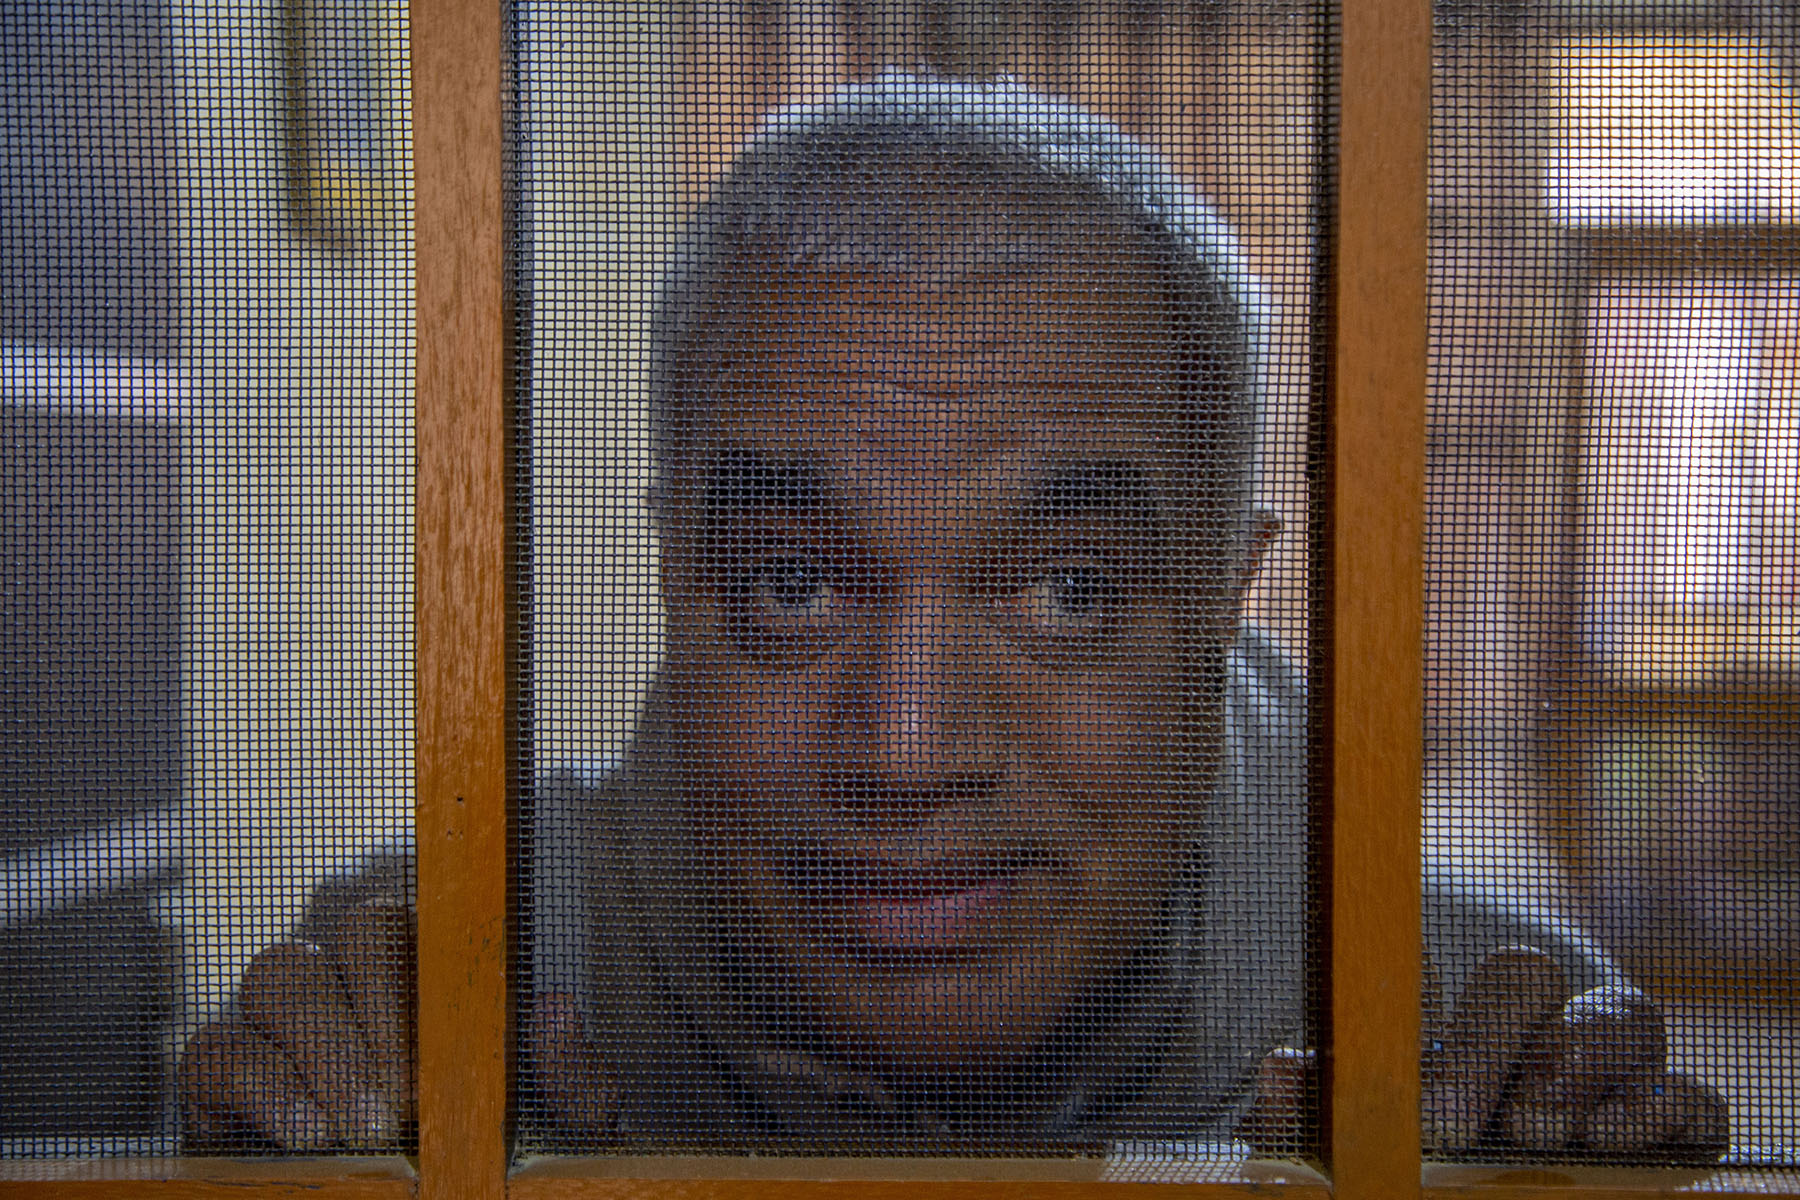 Close-up of Jayara staring from behind a metal mesh door that veils his face and creates a portrait of it with its wooden frame